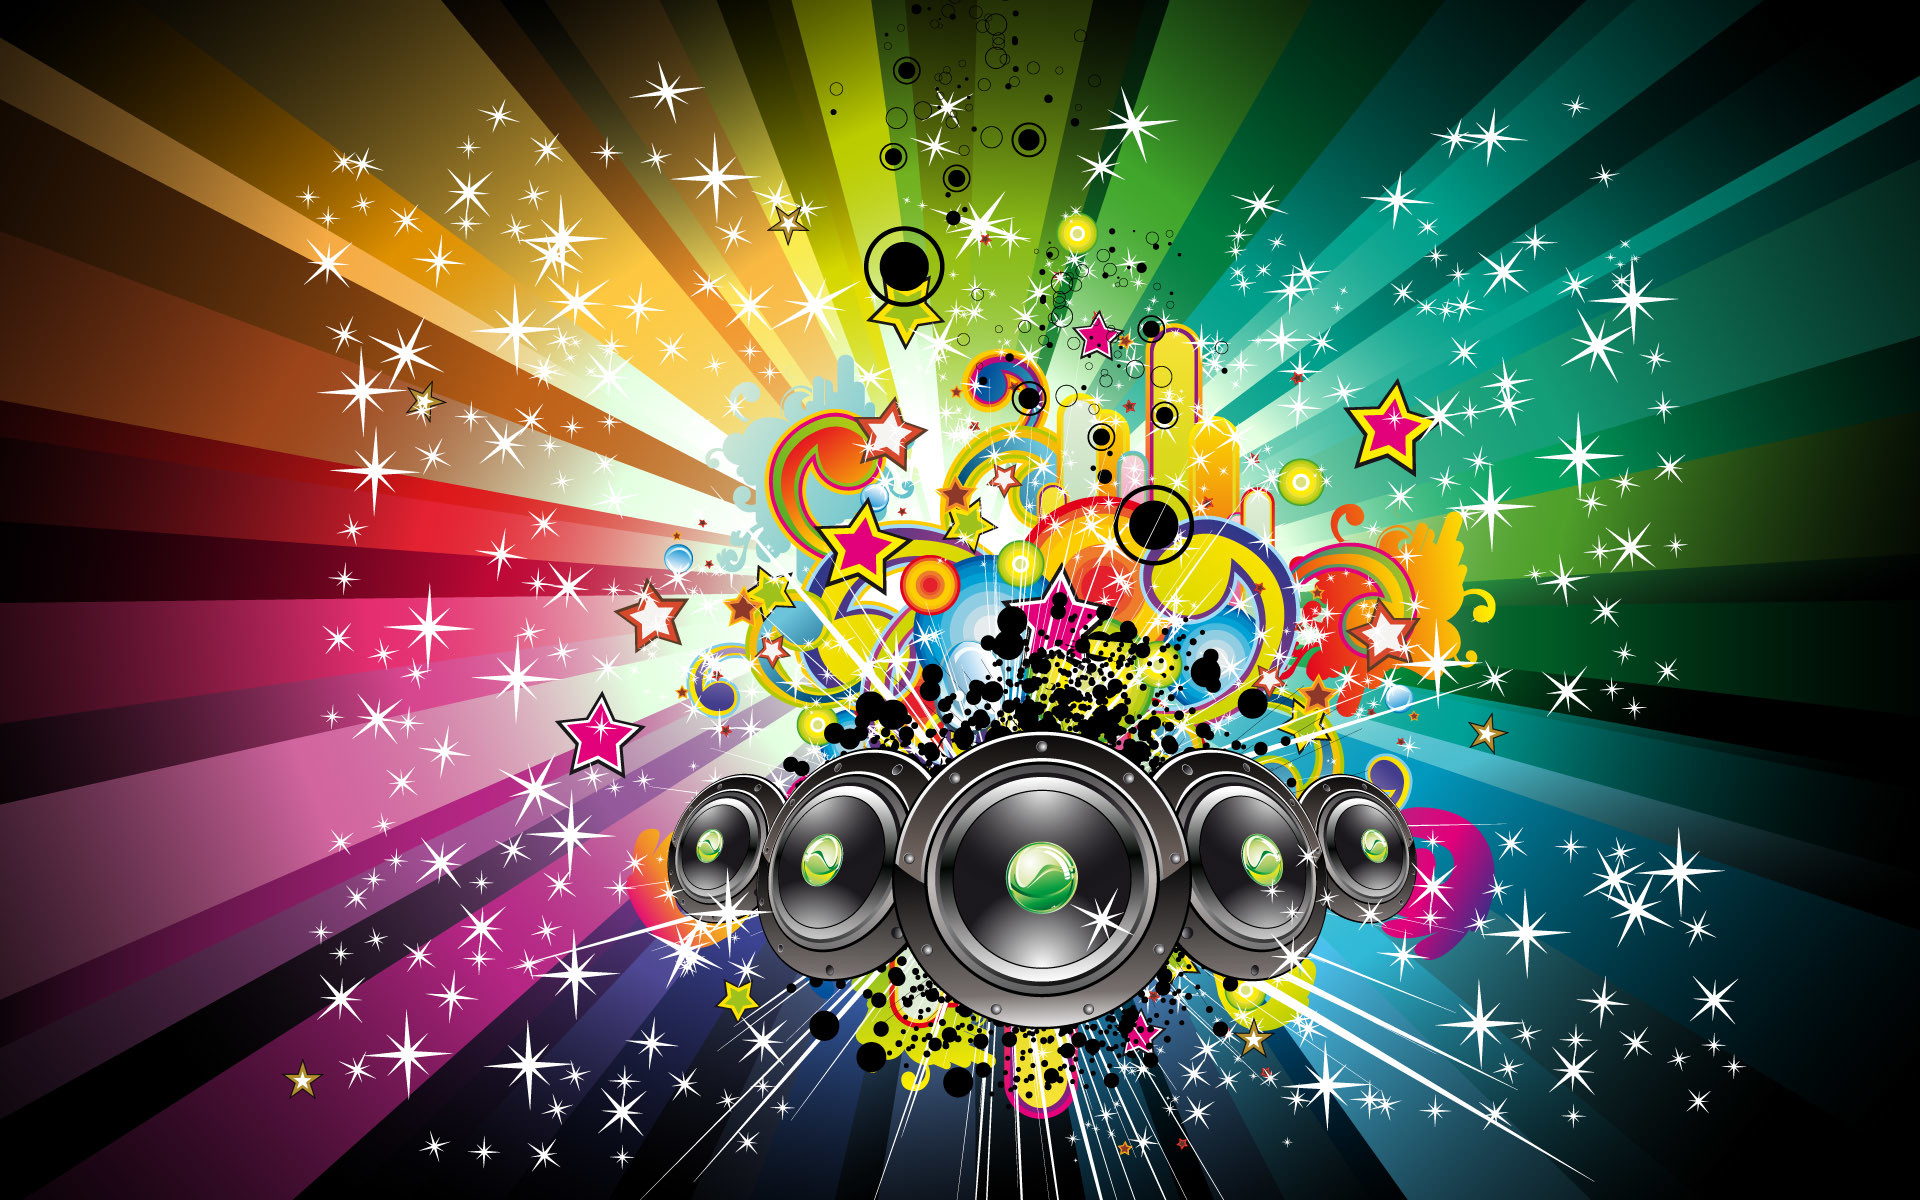 1920x1200 Download Music Background Desktop Colorful Wallpaper | Full HD